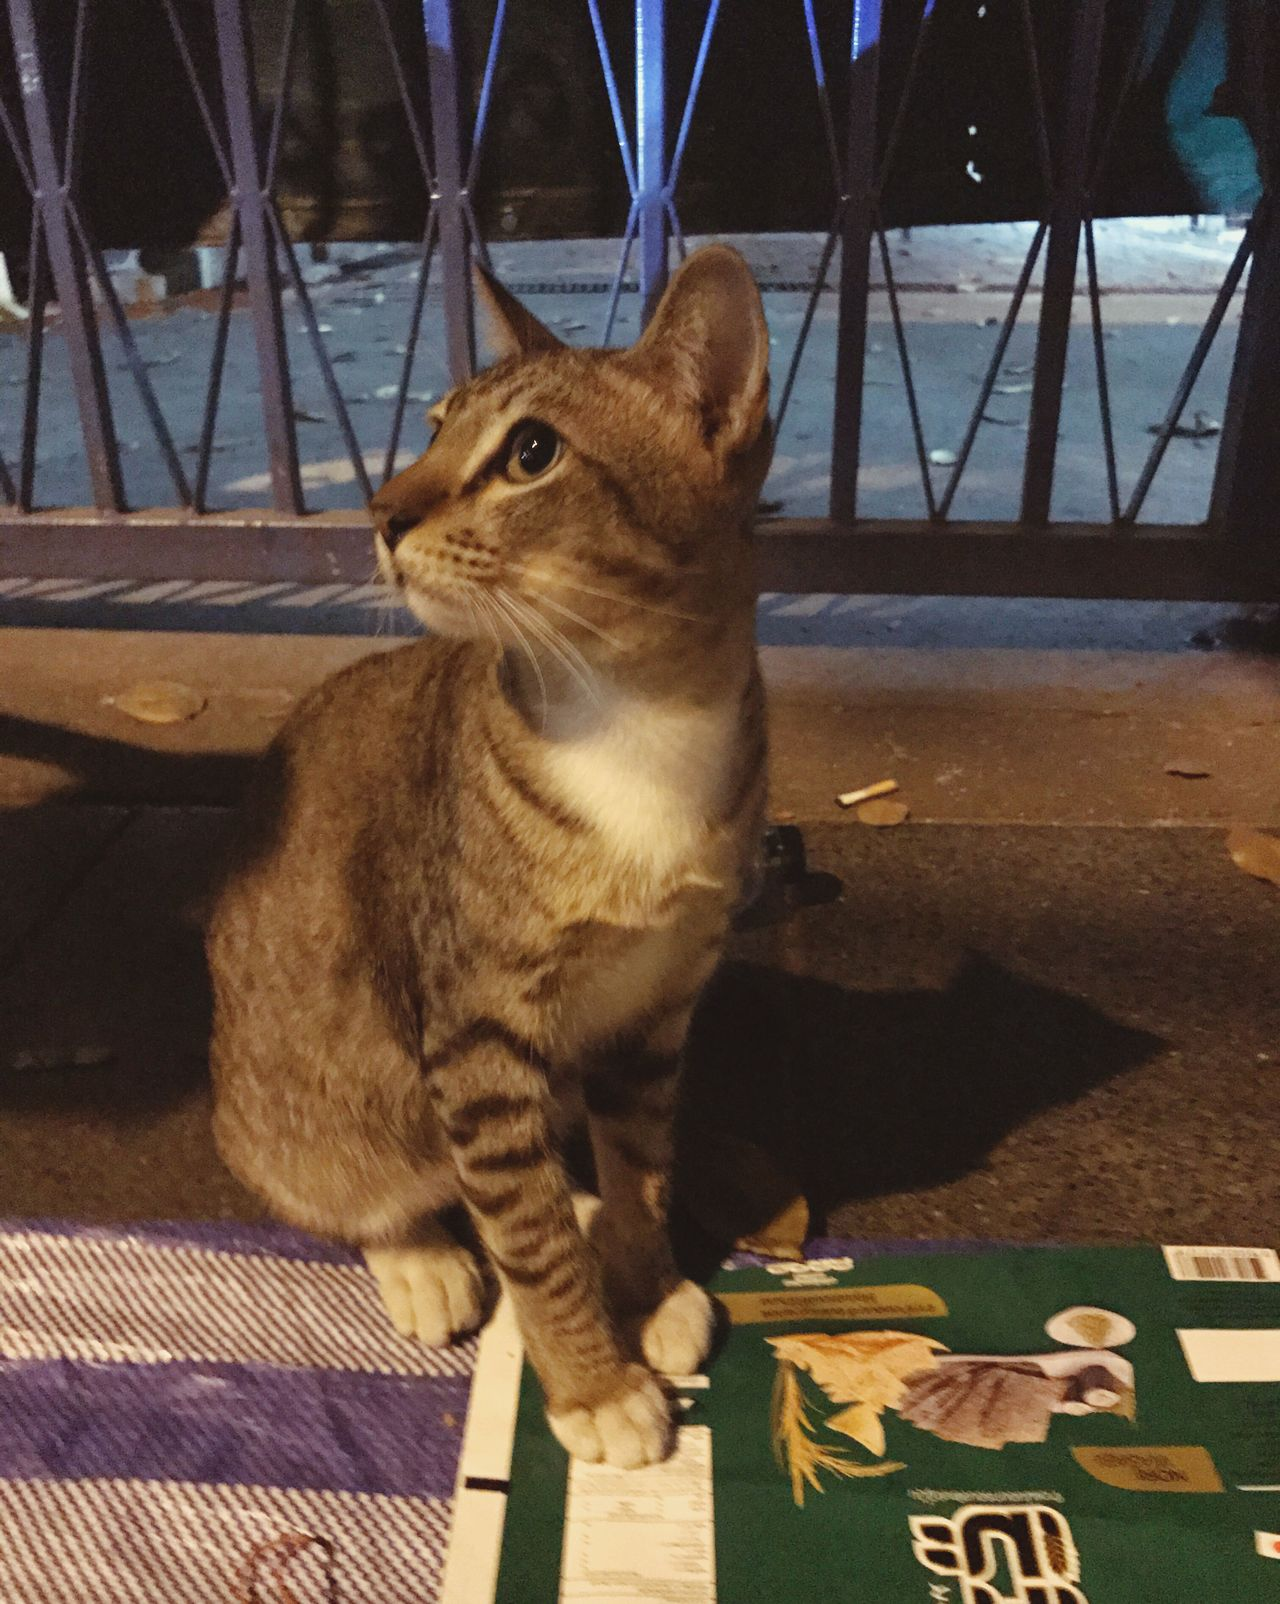 แมวริมถนน Domestic Cat One Animal Animal Themes Domestic Animals Mammal Feline Pets Sitting Cat No People Indoors  Close-up Day Cat Watching Cats Of EyeEm Cat Eyes Cat Lovers Cat♡ Cats Looking At Camera At Street :)